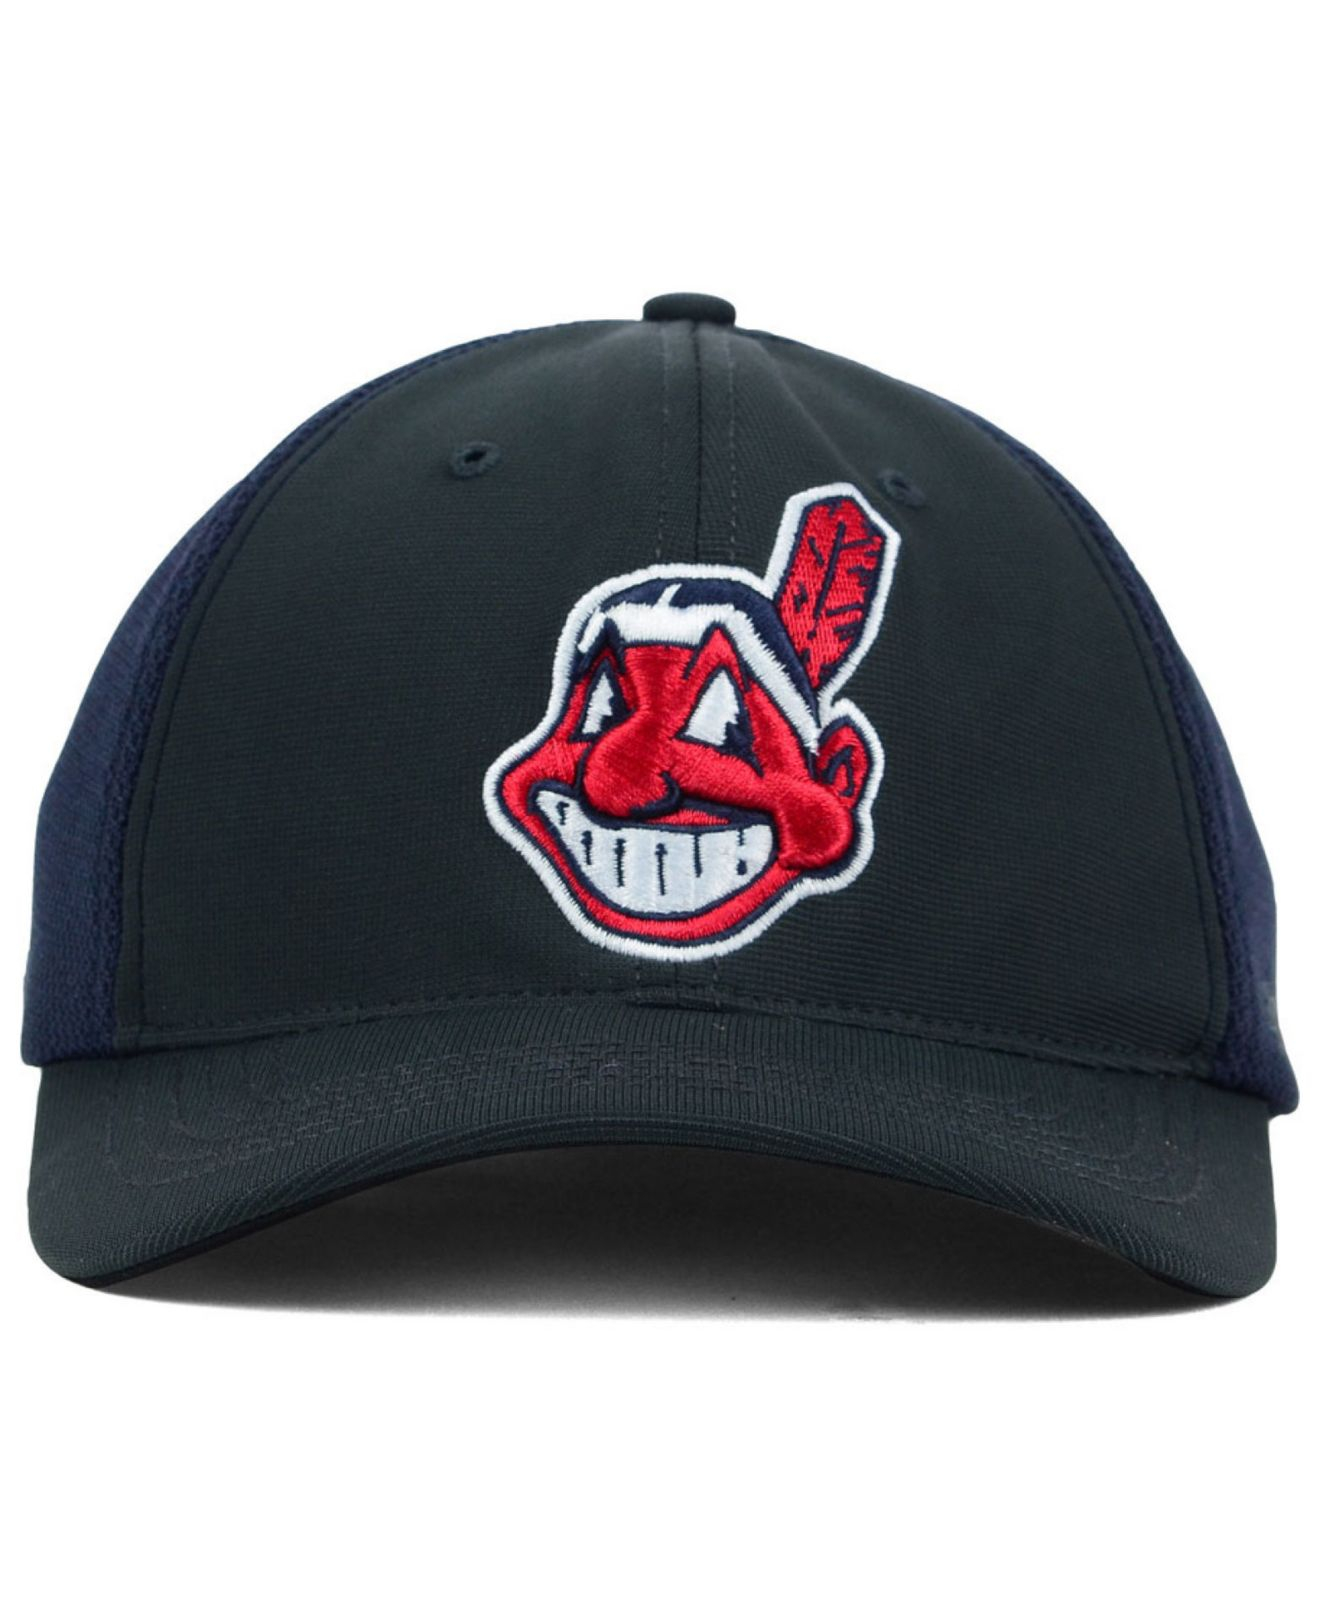 best sneakers 2f027 120c3 ... closeout lyst 47 brand cleveland indians stretch fit cap in gray for men  8fc05 fba11